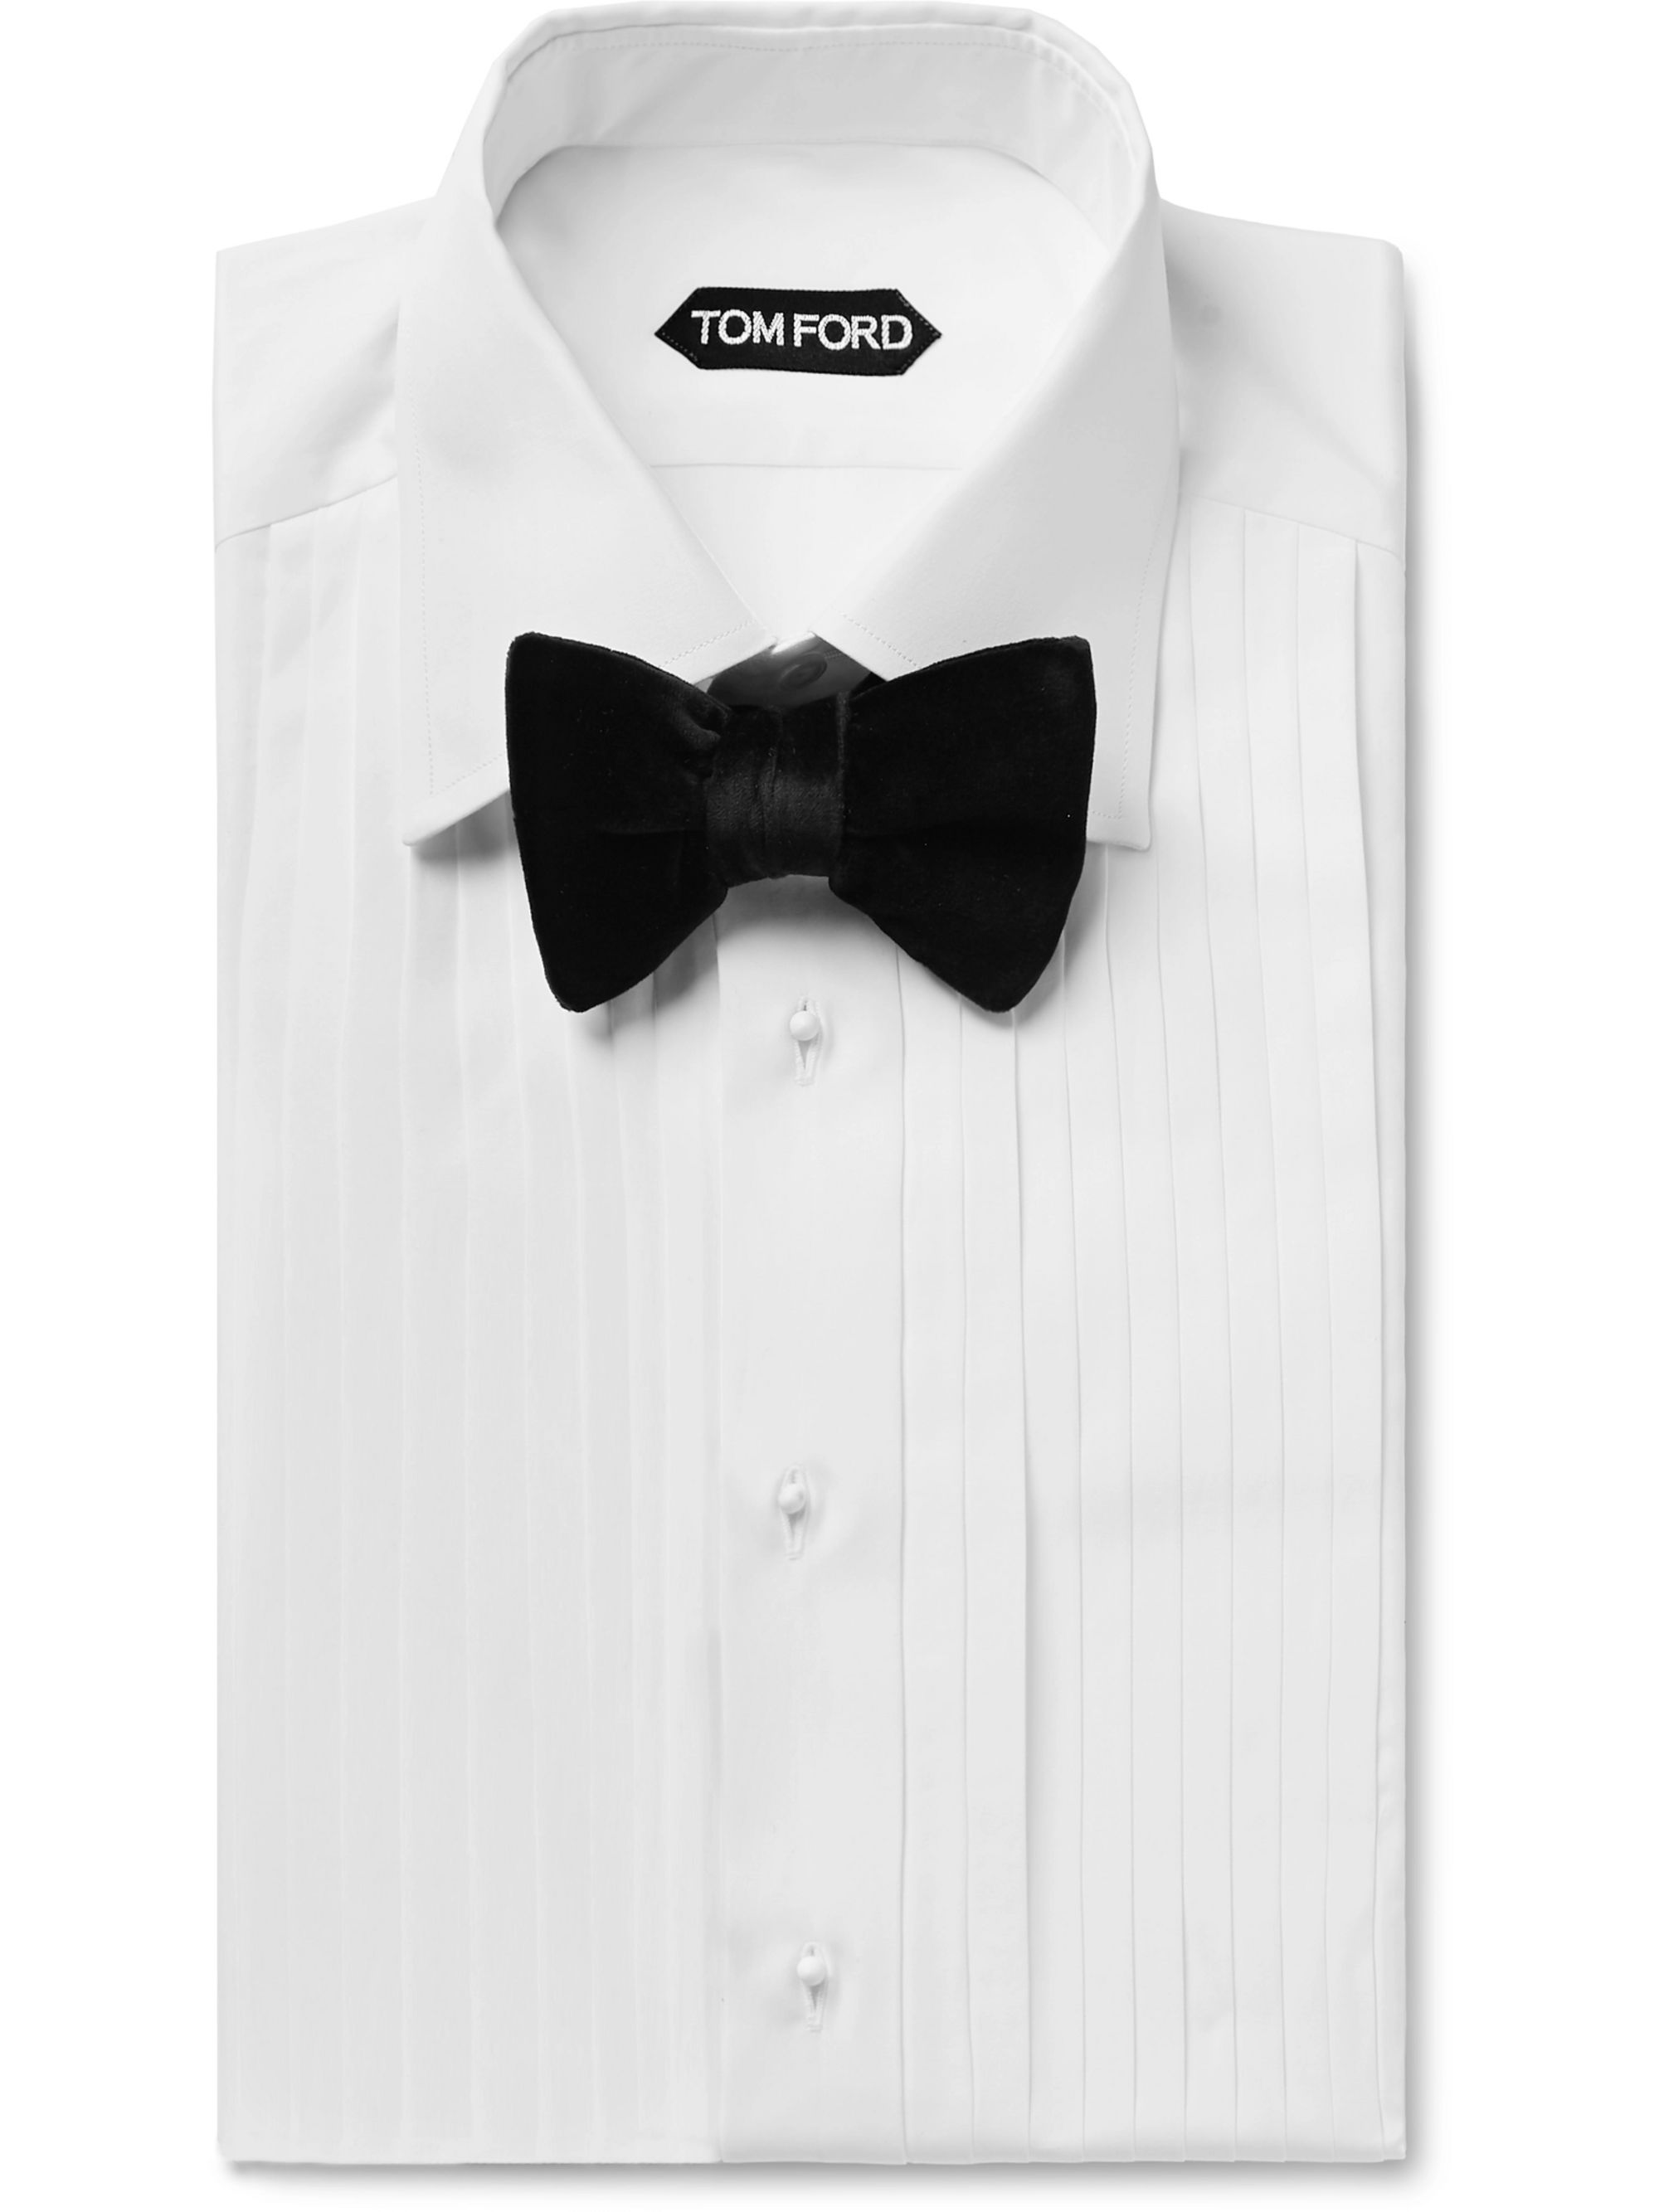 TOM FORD White Slim-Fit Bib-Front Double-Cuff Sea Island Cotton Shirt